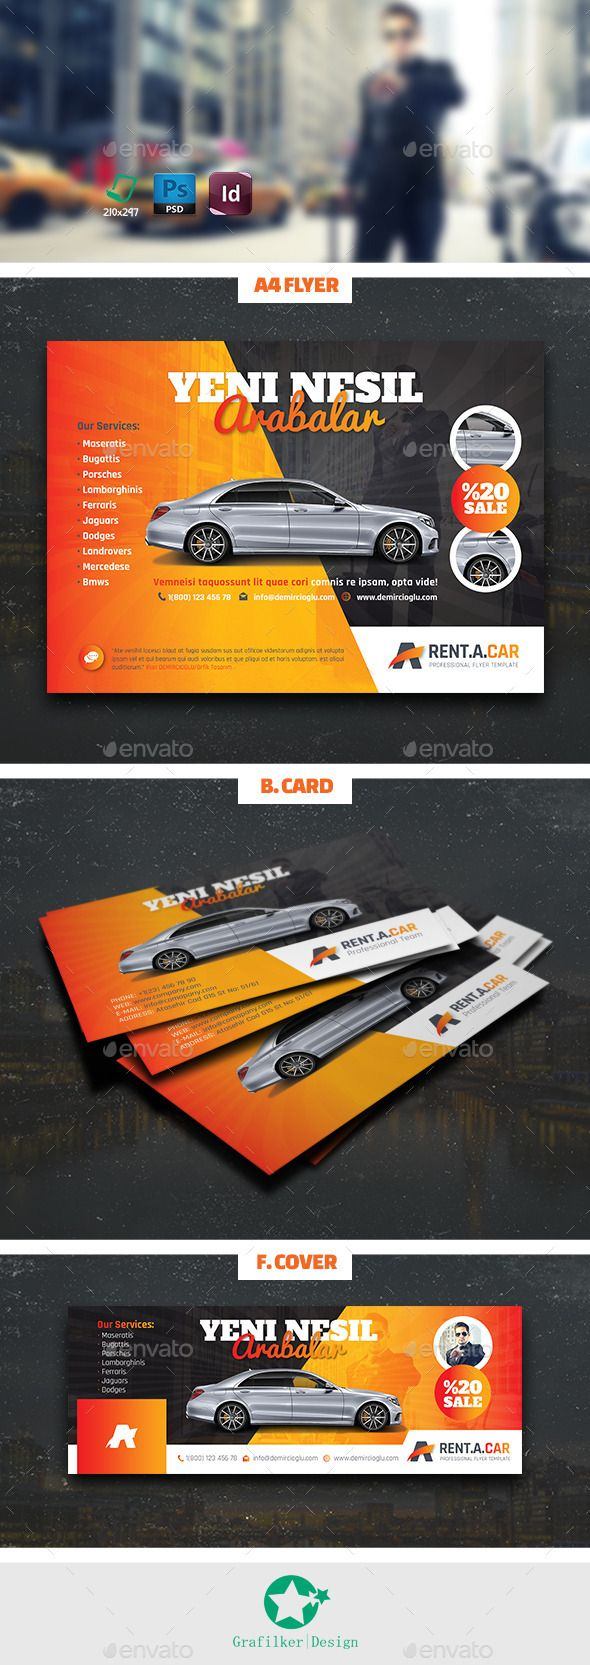 Rent A Car Bundle Templates  — PSD Template #297x210 • Download ➝ https://graphicriver.net/item/rent-a-car-bundle-templates/12520078?ref=pxcr